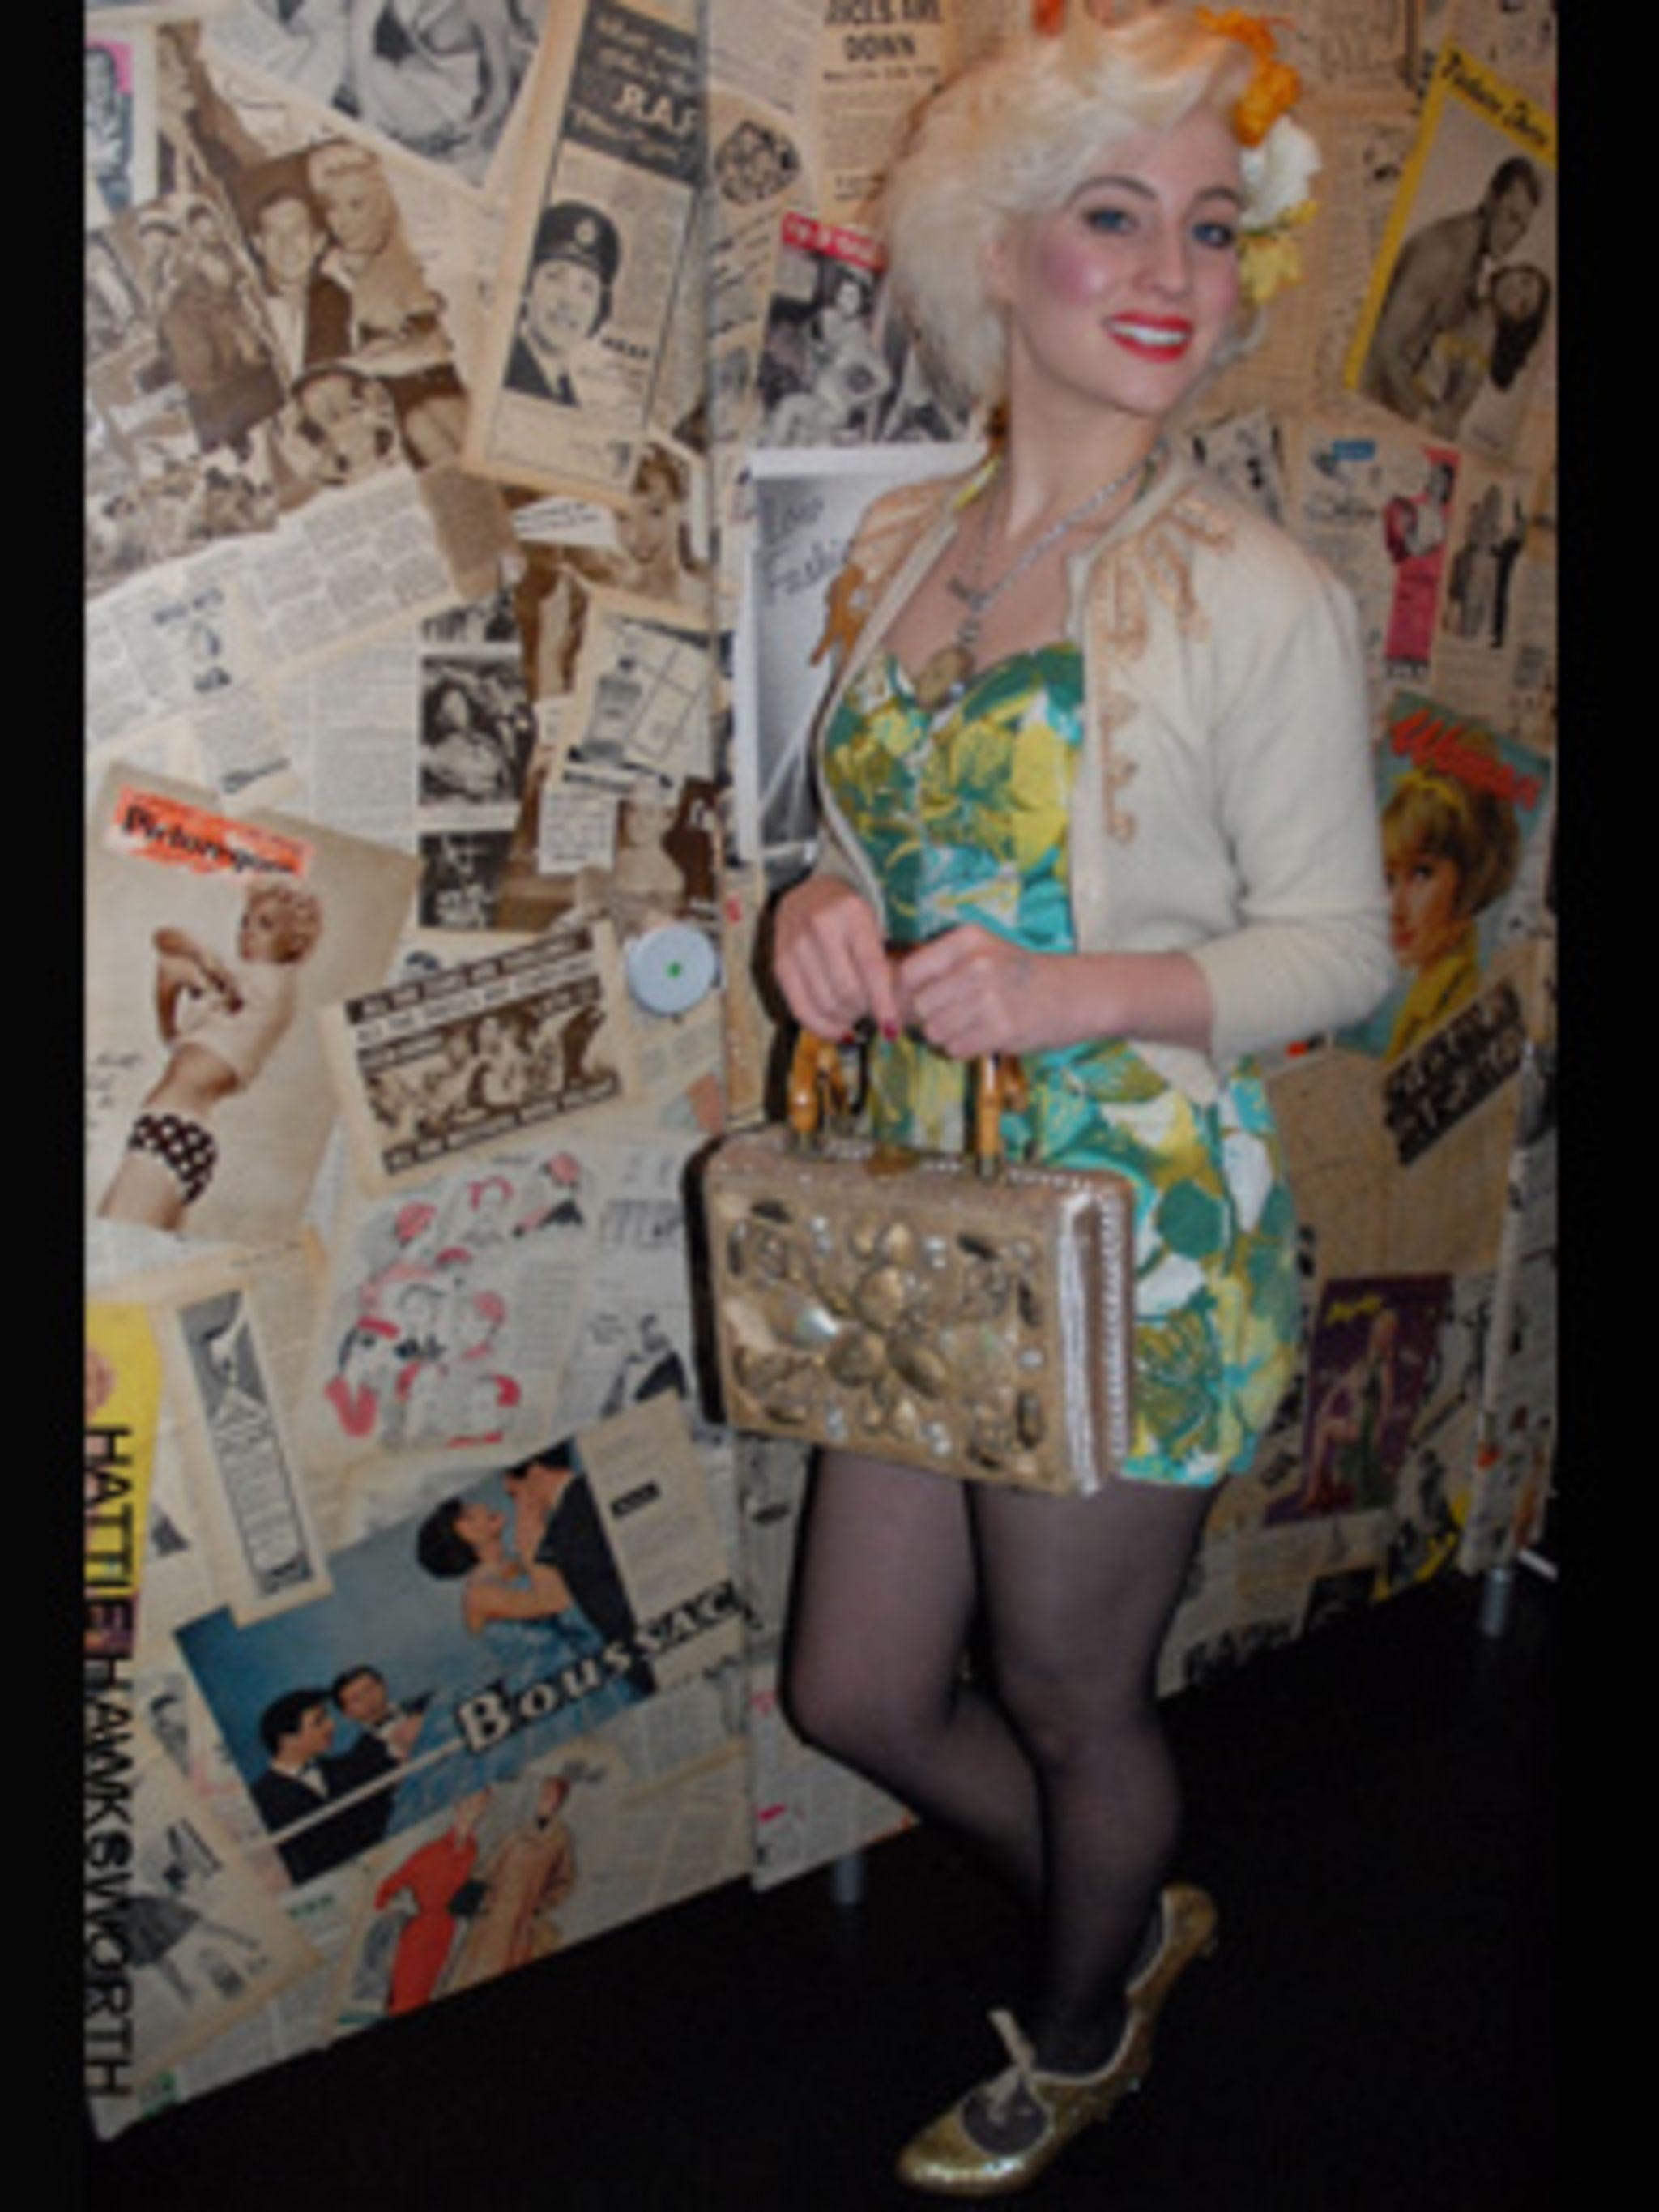 <p>Hannah, 23, from London- <strong>Update any dress</strong> with a 50's silhouette. I have the perfect waist clincher belt and 'bullet' bra inserts from What Katie Did in Portobello Road.- <strong>Do your homework</strong>. Look in old design books, thi